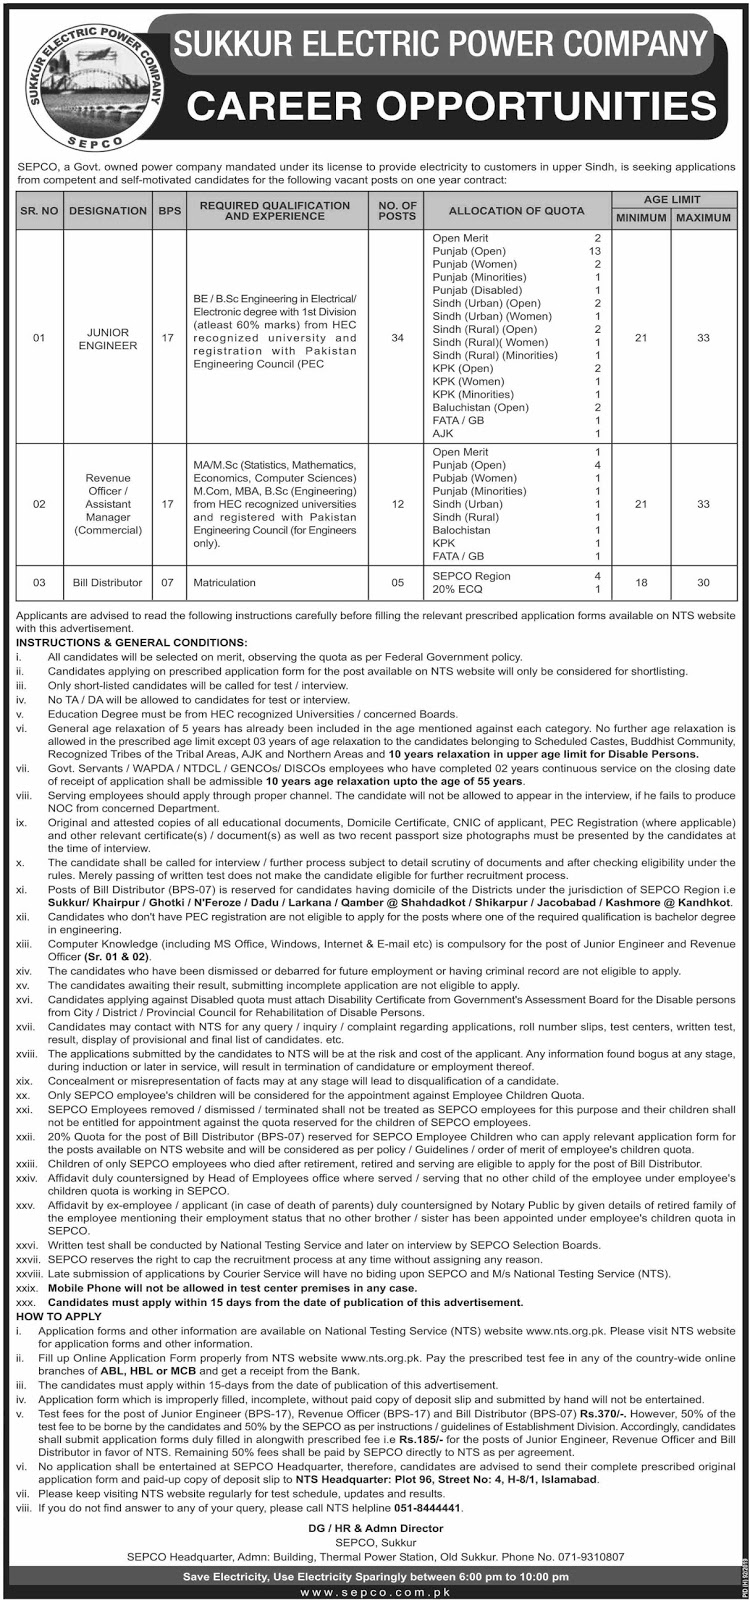 Sukkur Electric Power Company sepco Latest Jobs 2019